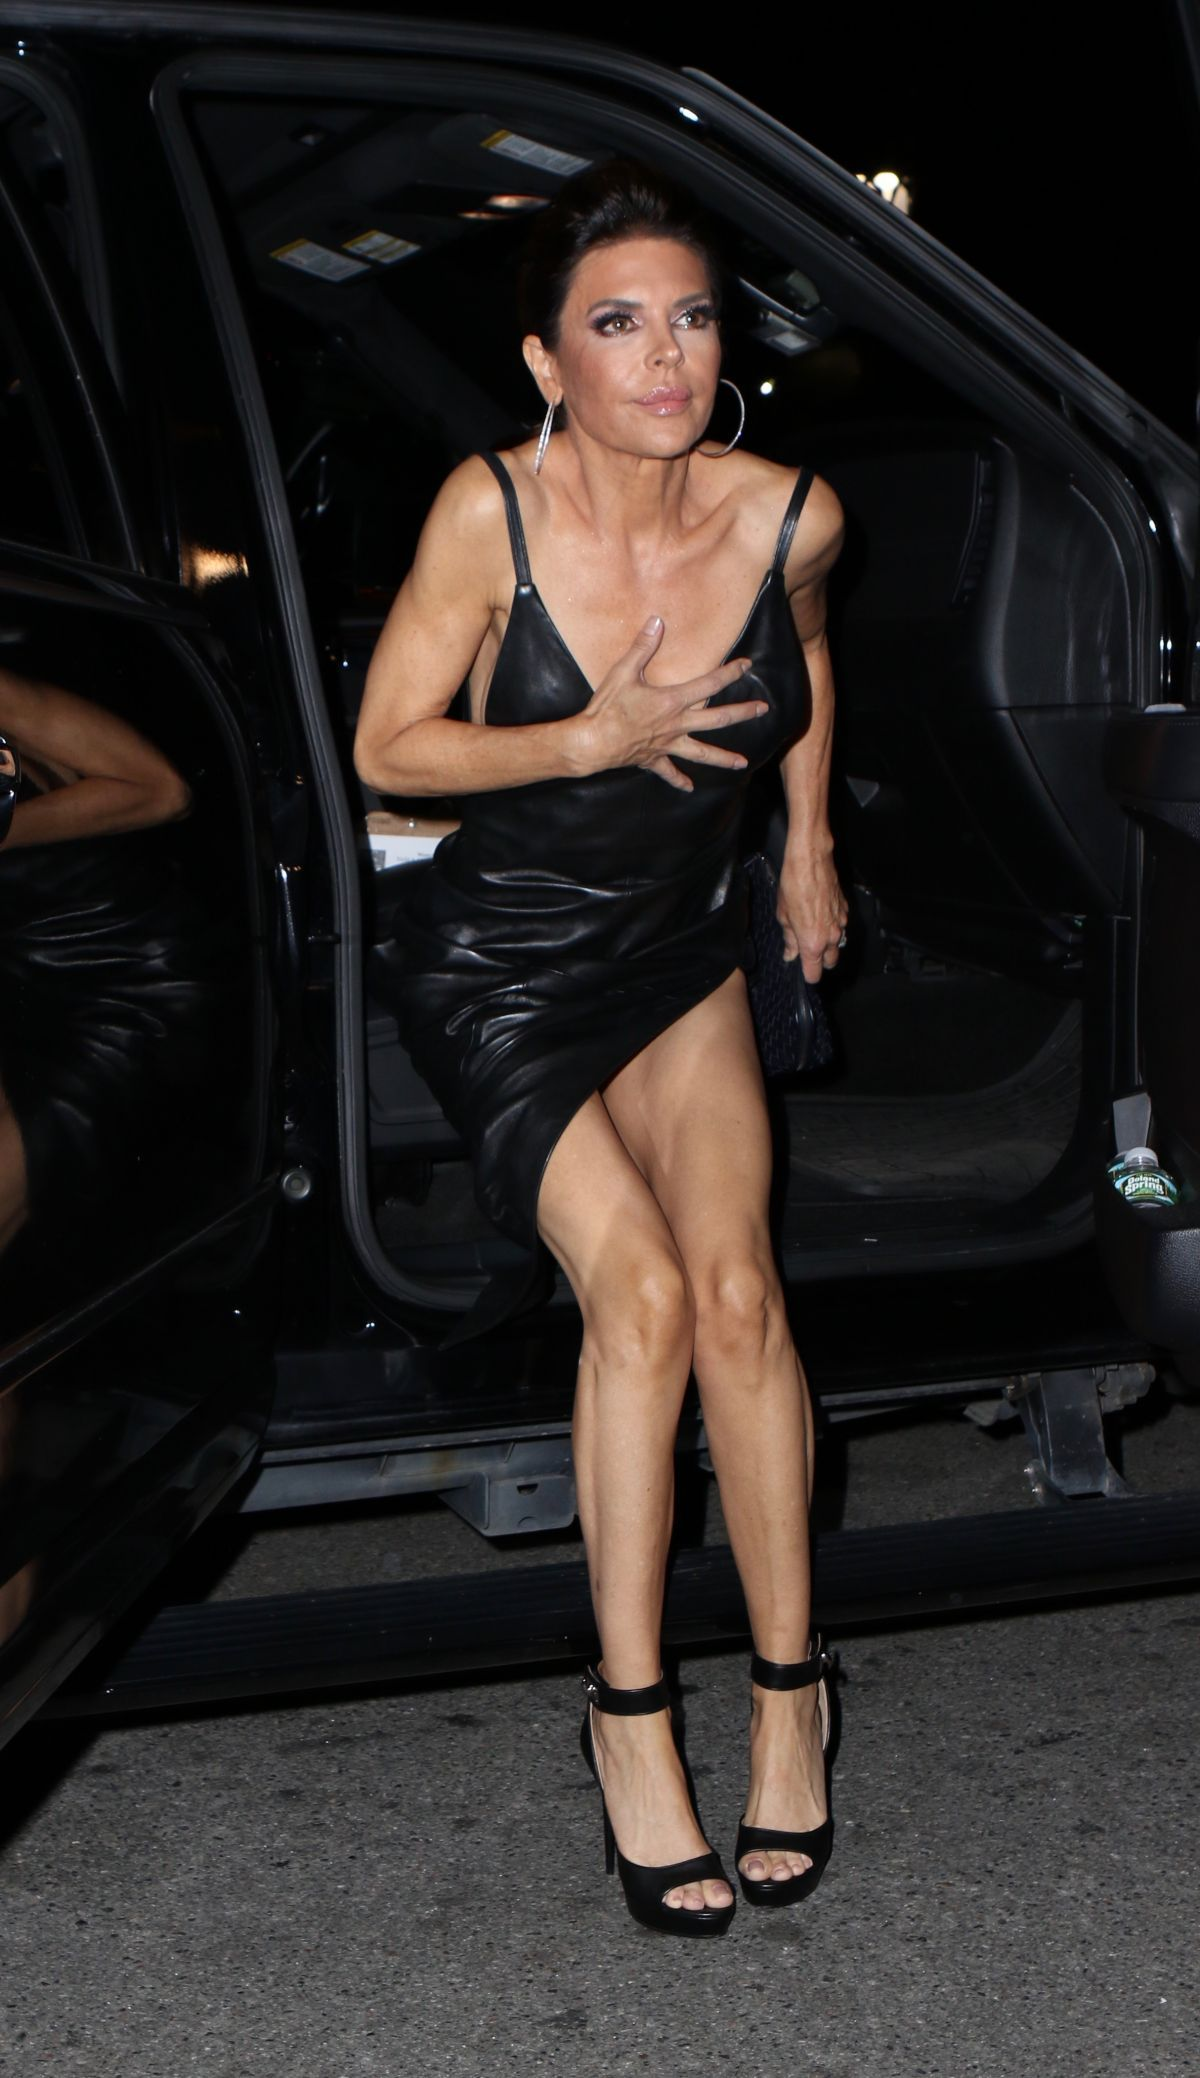 Paparazzi Lisa Rinna nudes (21 foto and video), Topless, Paparazzi, Feet, butt 2020